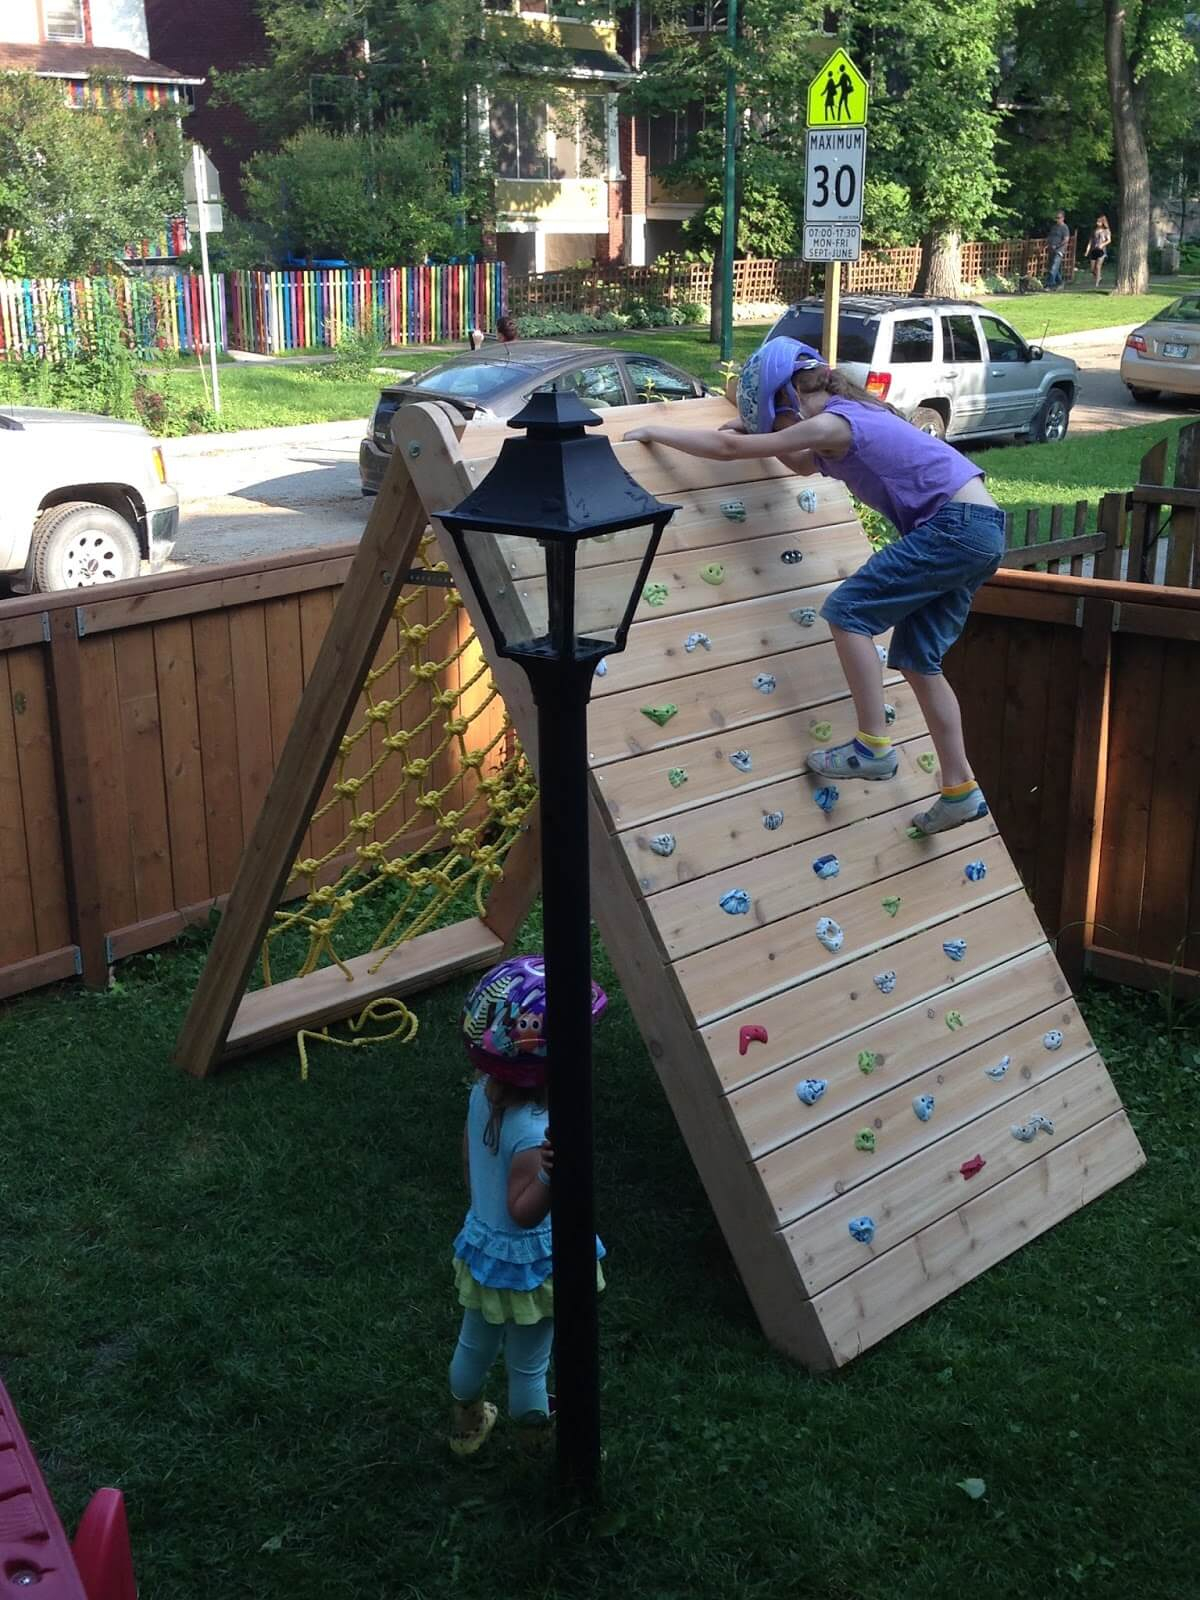 34 Best Diy Backyard Ideas And Designs For Kids In 2019 throughout 10 Genius Tricks of How to Upgrade Backyard Fun Ideas